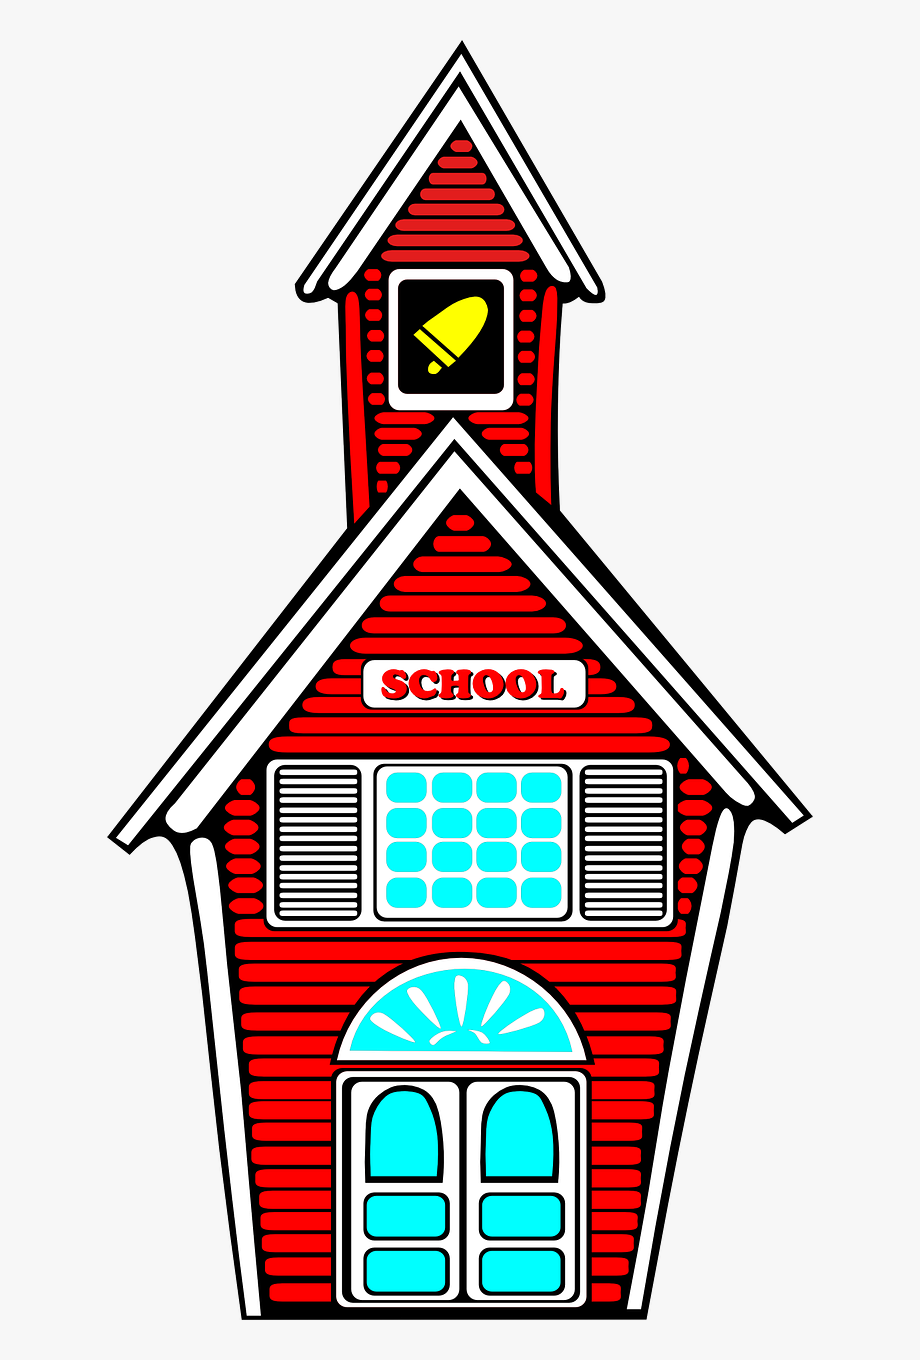 Elementary School Clipart No Background.